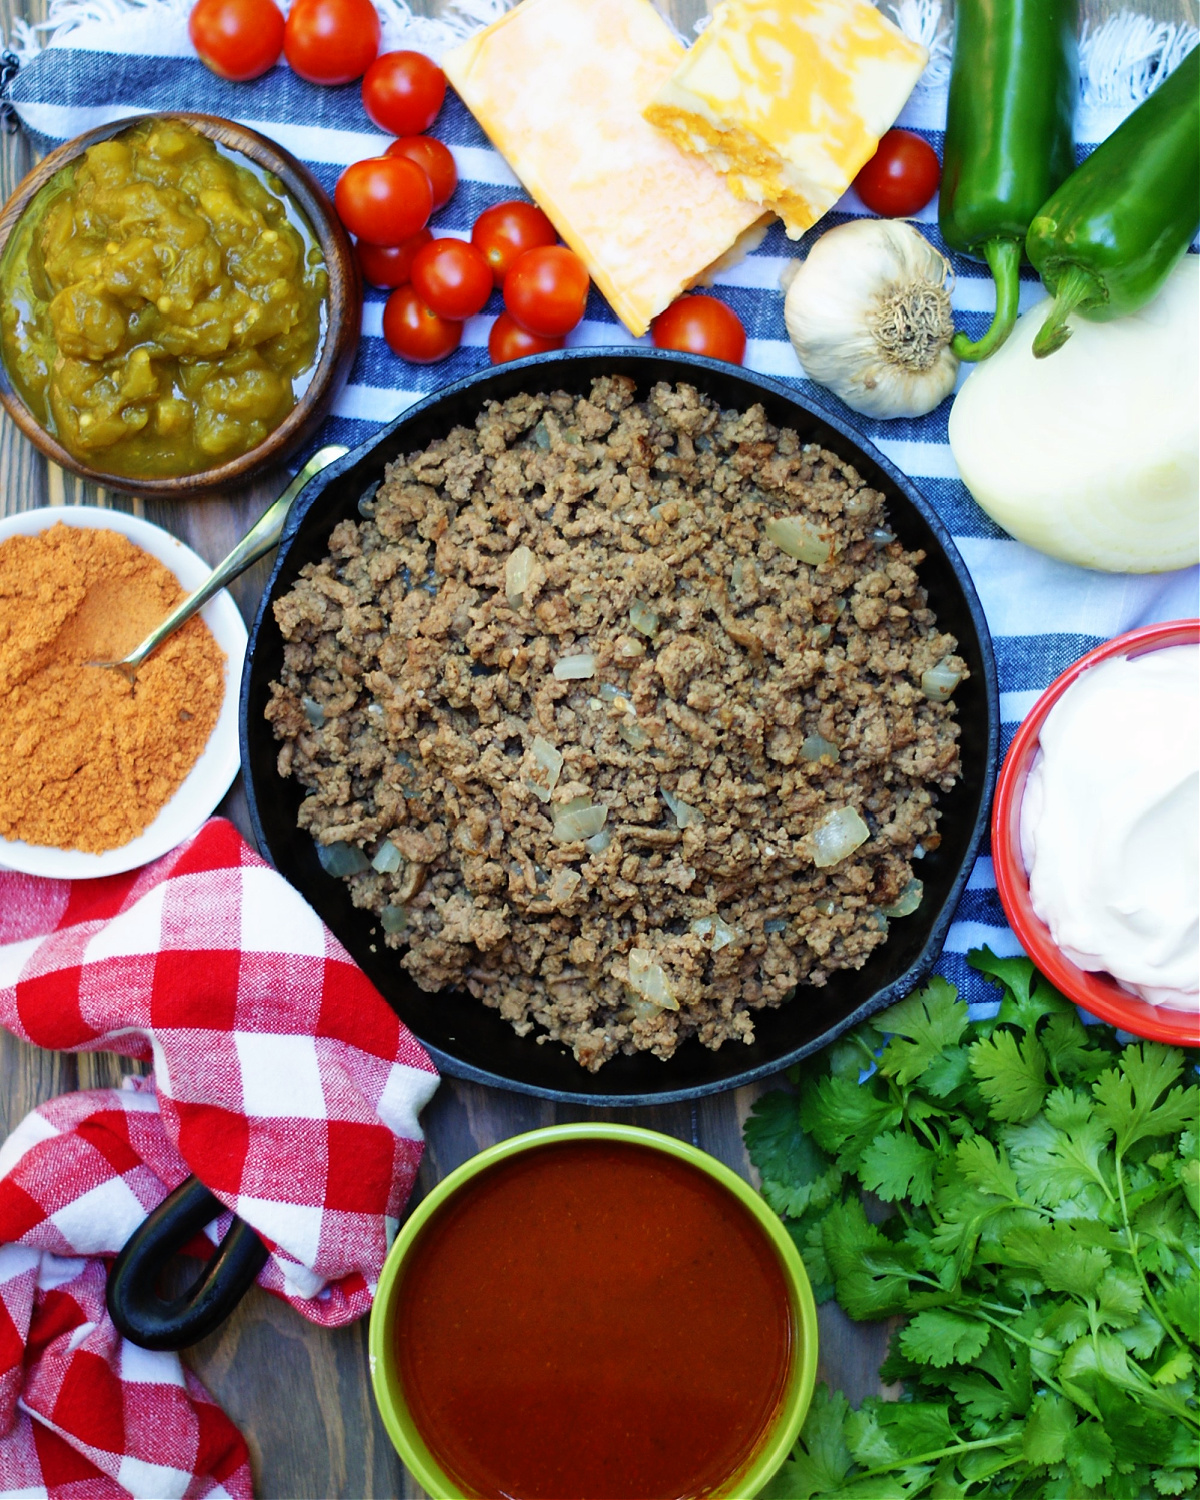 Gound beef, red enchilada sauce and cheese are the main ingredients in this hot dip